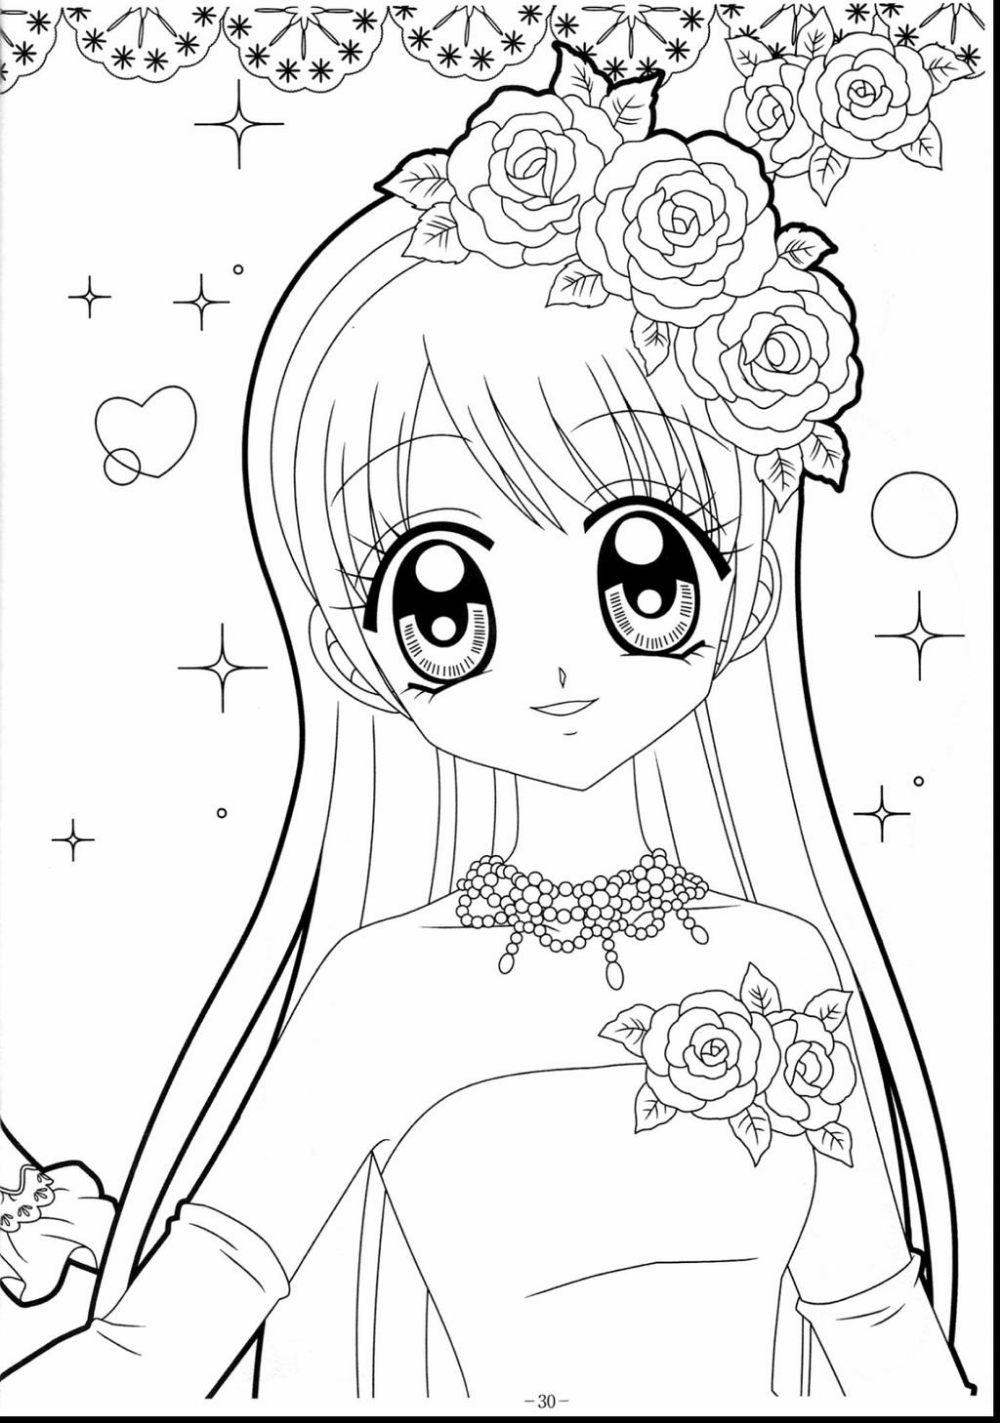 Gacha Life Coloring Pages Line Drawing Unicorn Coloring Pages Mermaid Coloring Pages Cute Coloring Pages